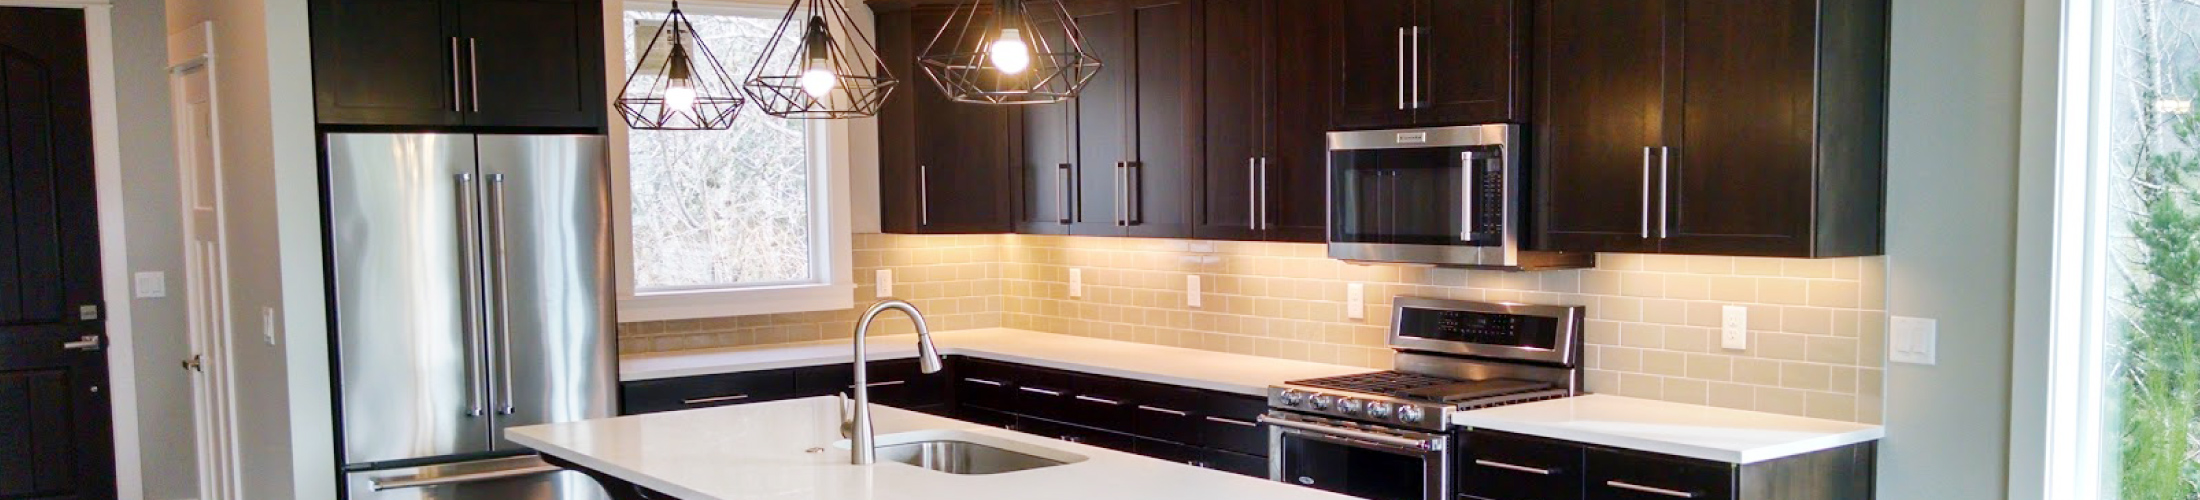 Amcraft Custom Cabinetry & Countertops • McMinnville, Oregon